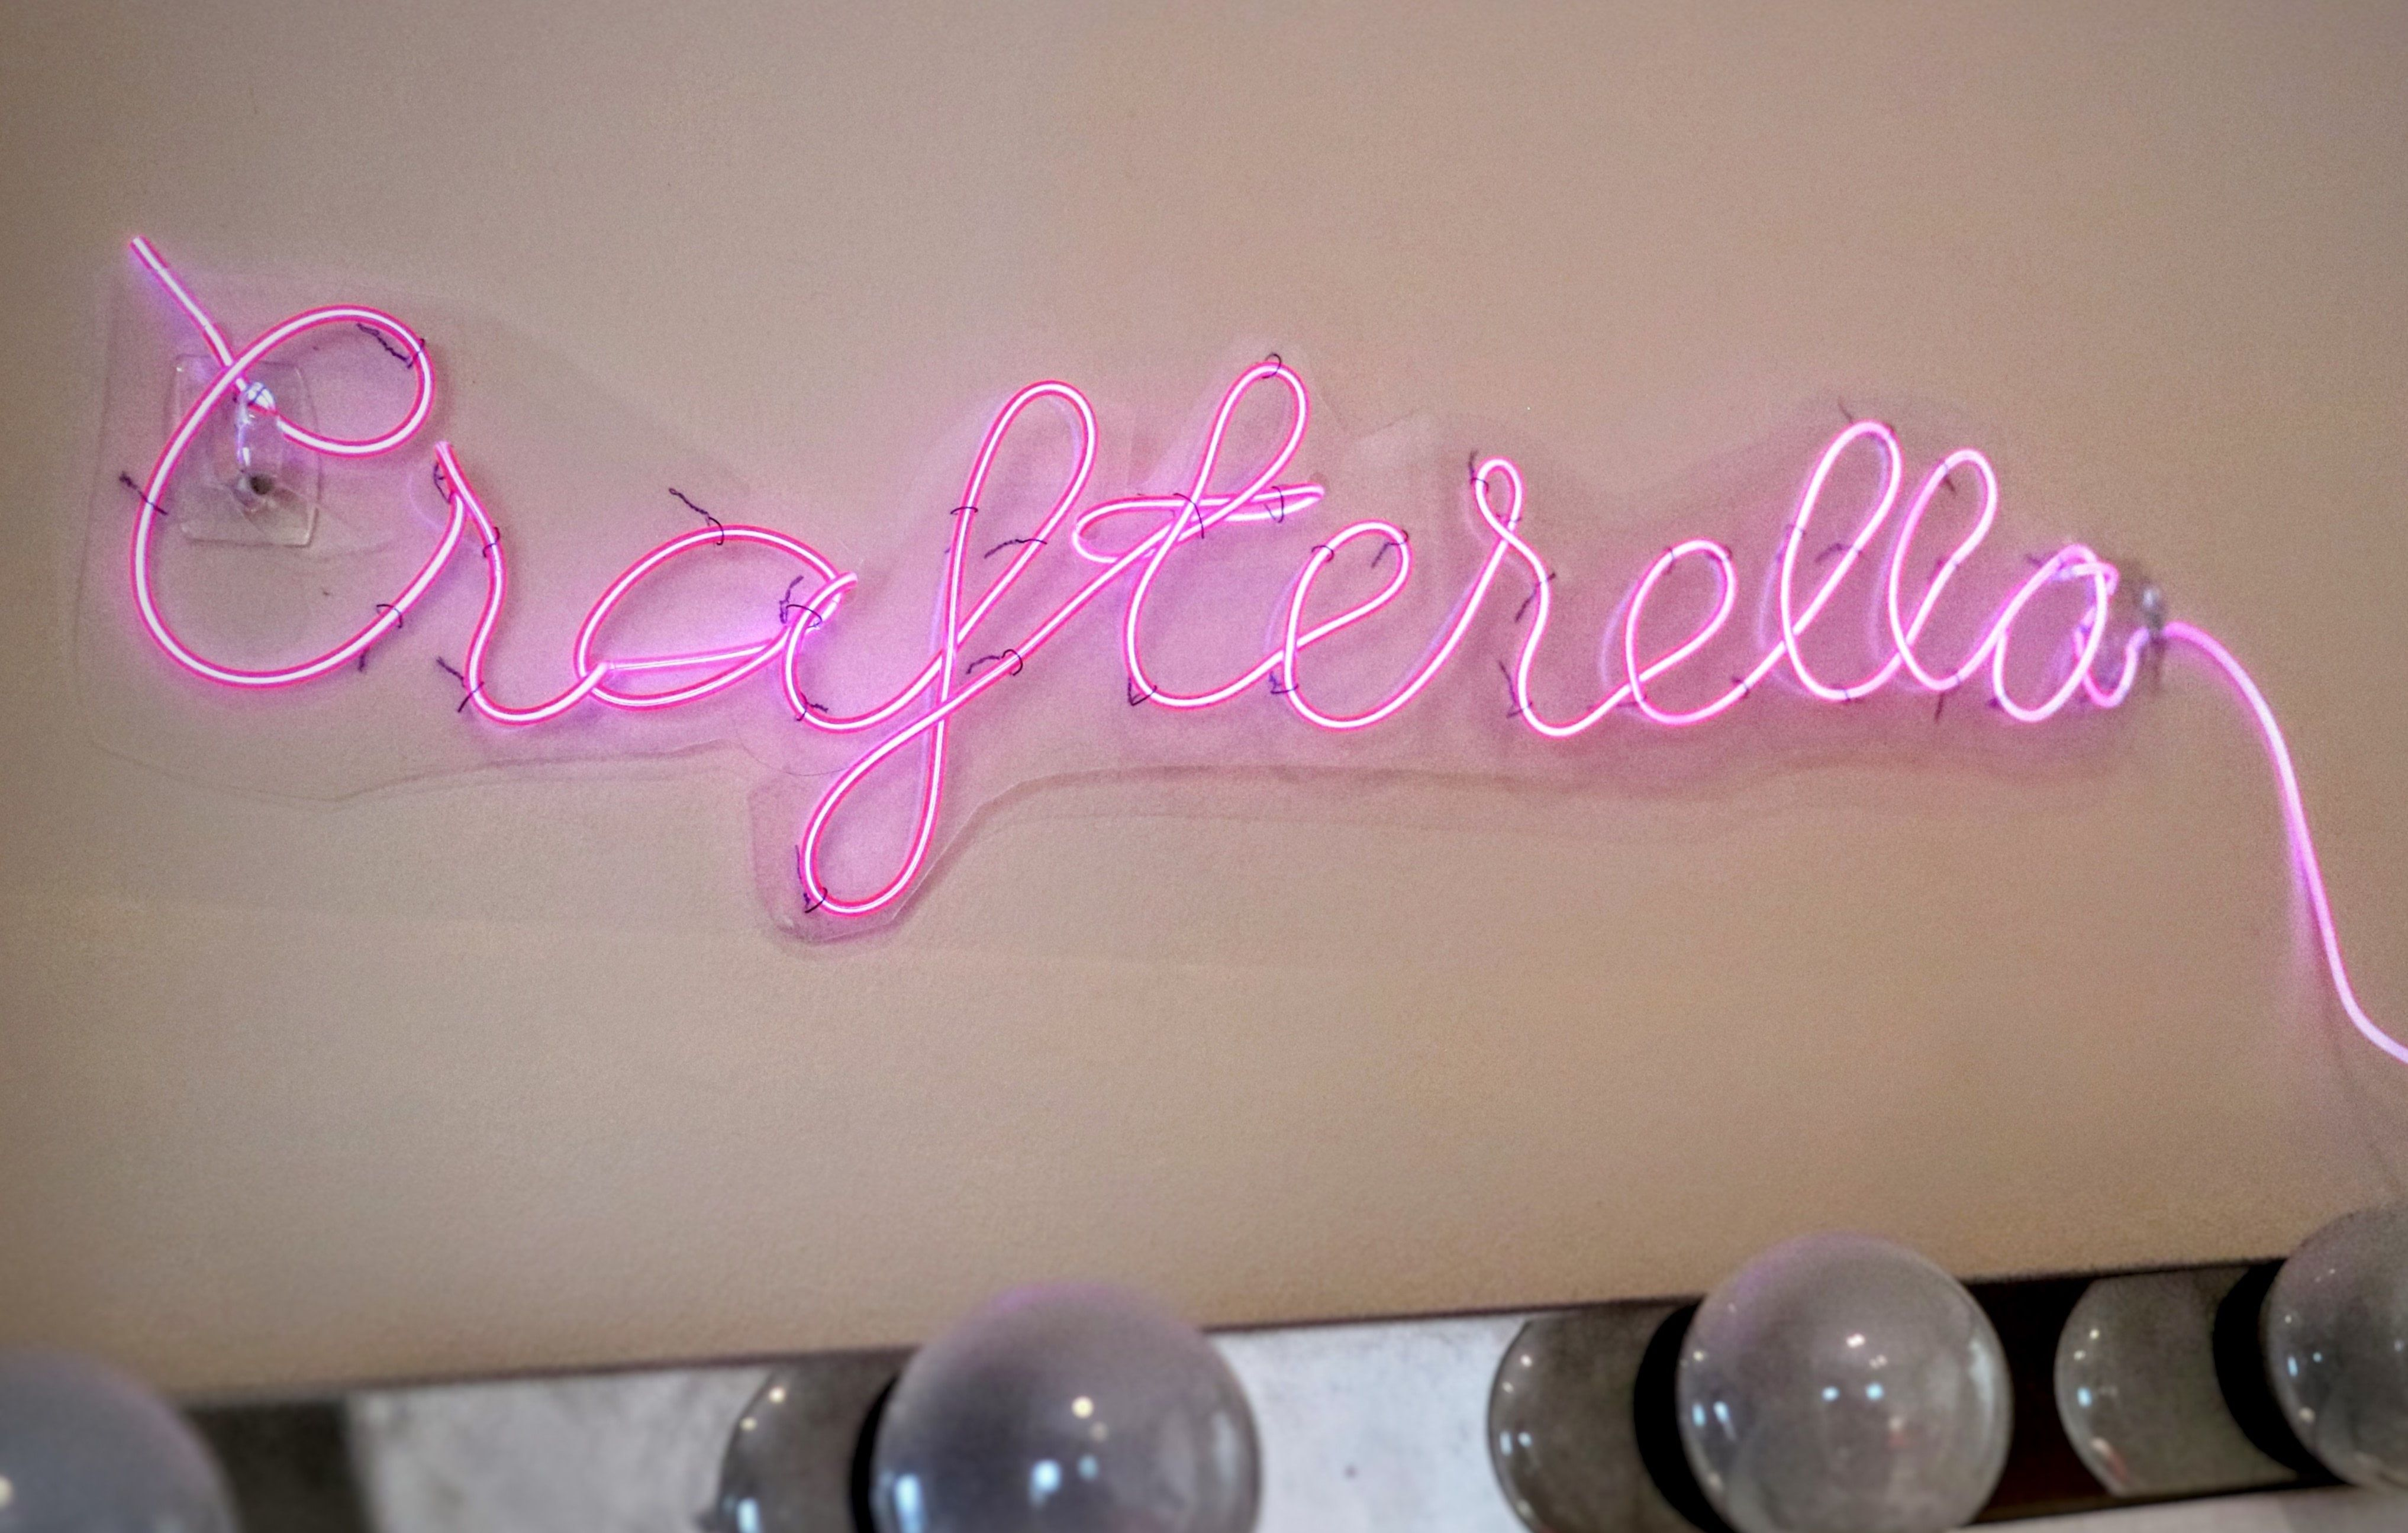 Diy Neon Sign Diy neon sign, Neon signs, Custom neon signs